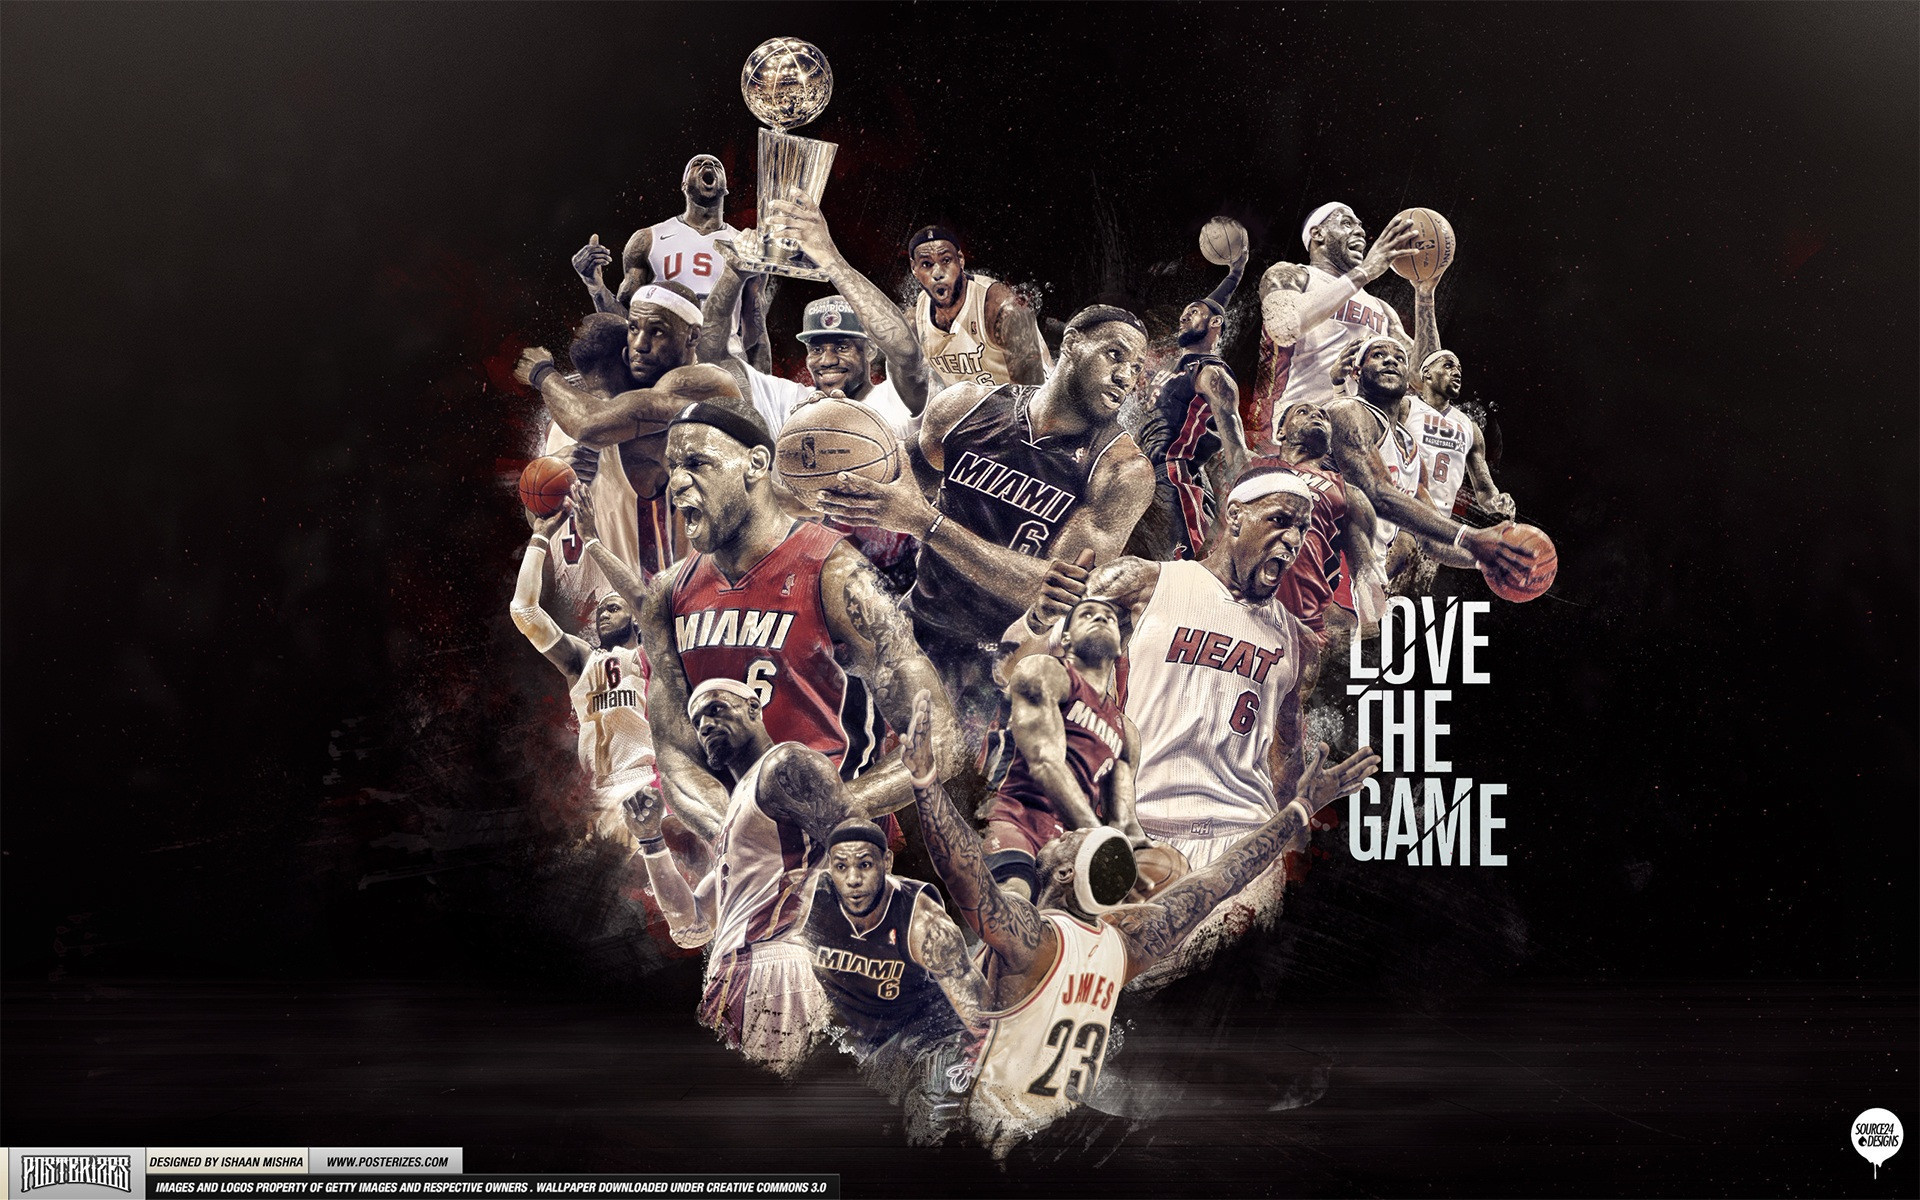 1920x1200 1080x1920 1080x1920 Wallpaper lebron james, nba, miami heat, basketball